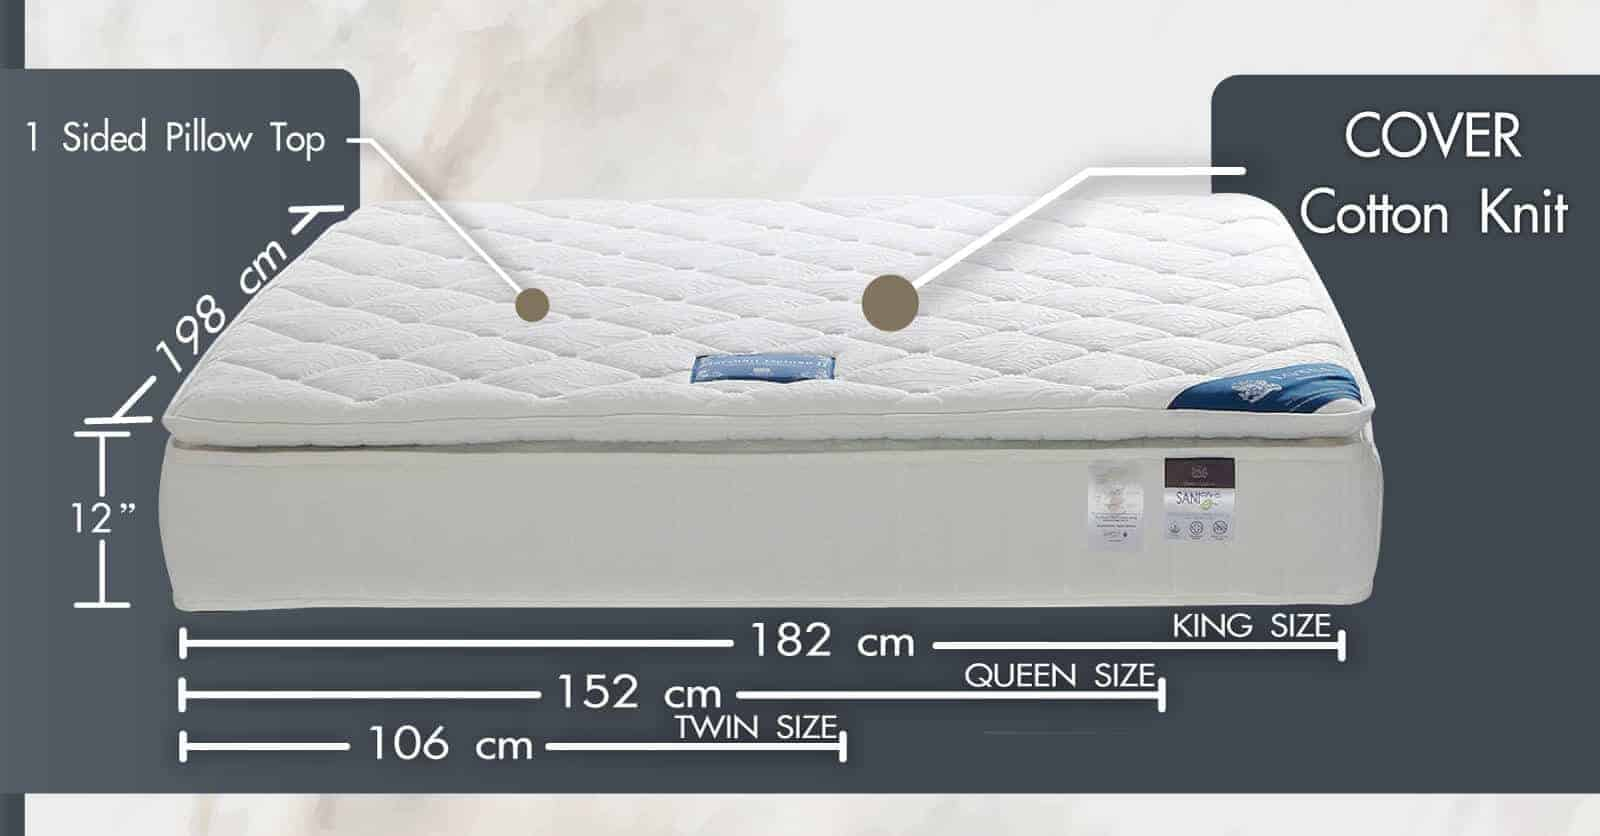 Lotus Foam Spring Mattress Marshall Deluxe II – Medium Soft Mattress – Thickness 12 inches – Warranty 10 years 10